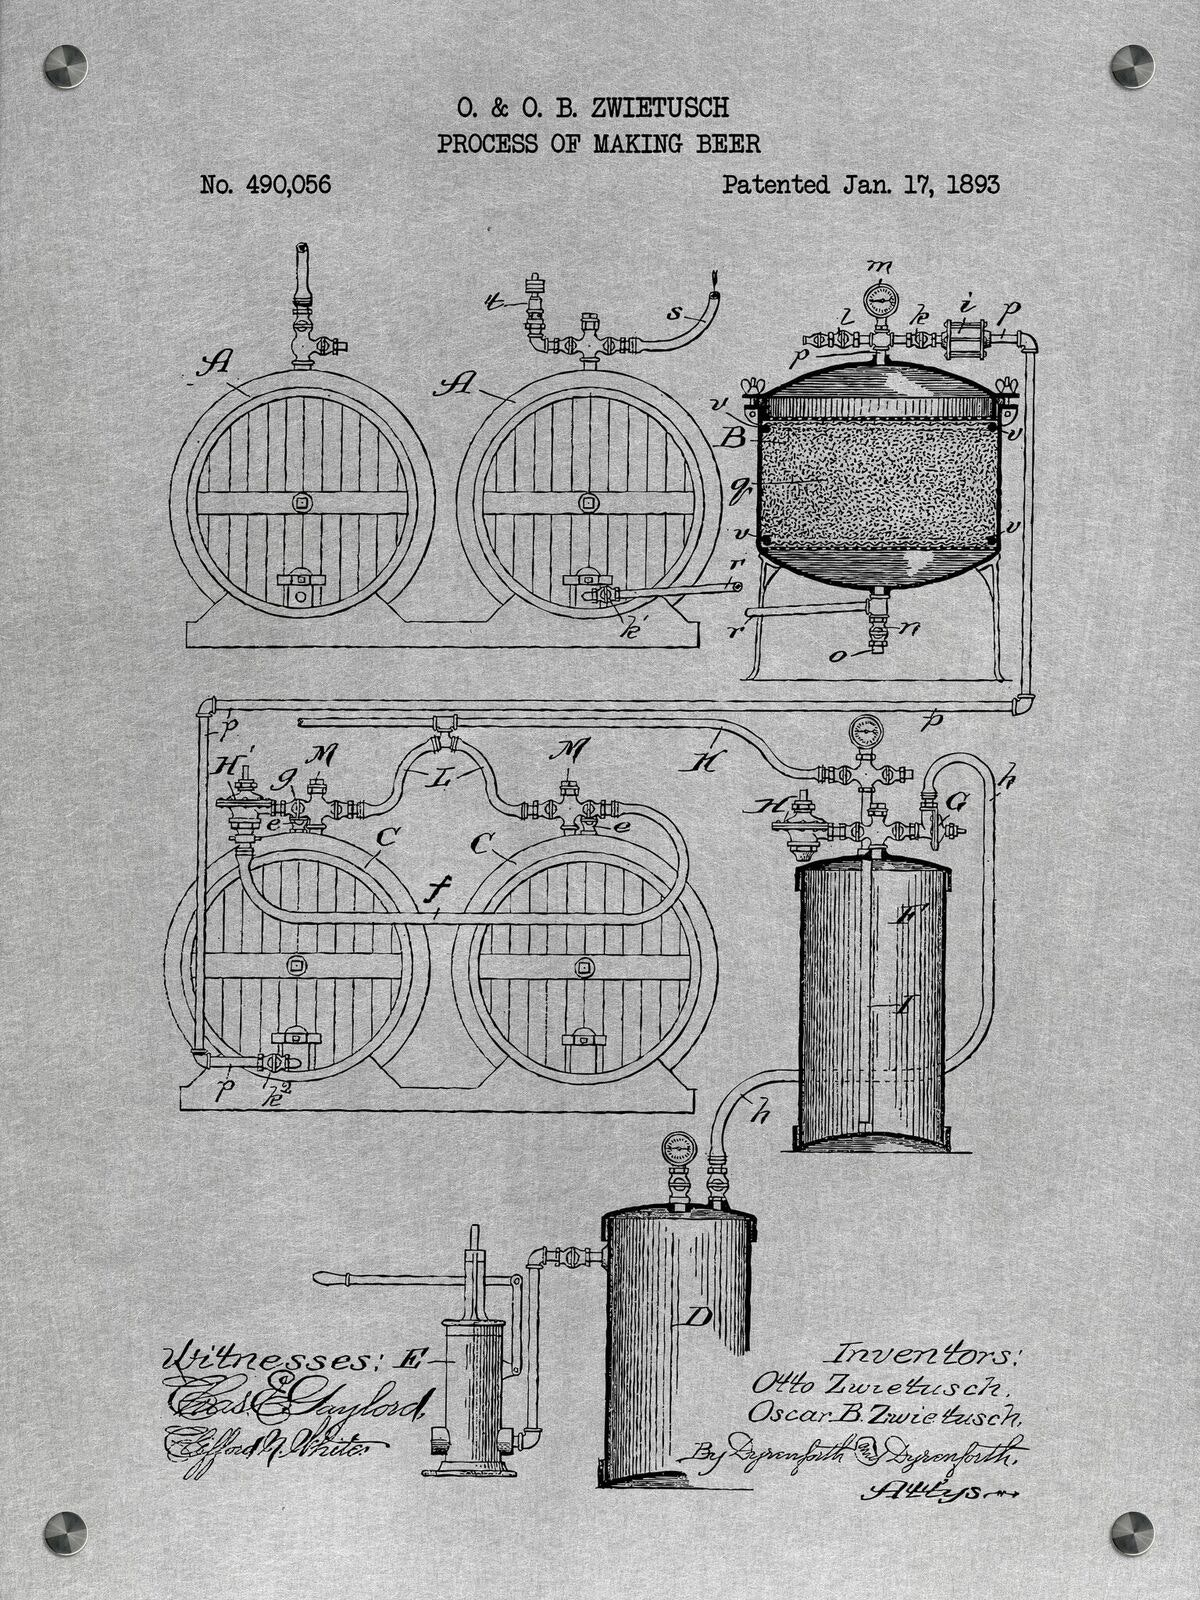 Process of Making Beer